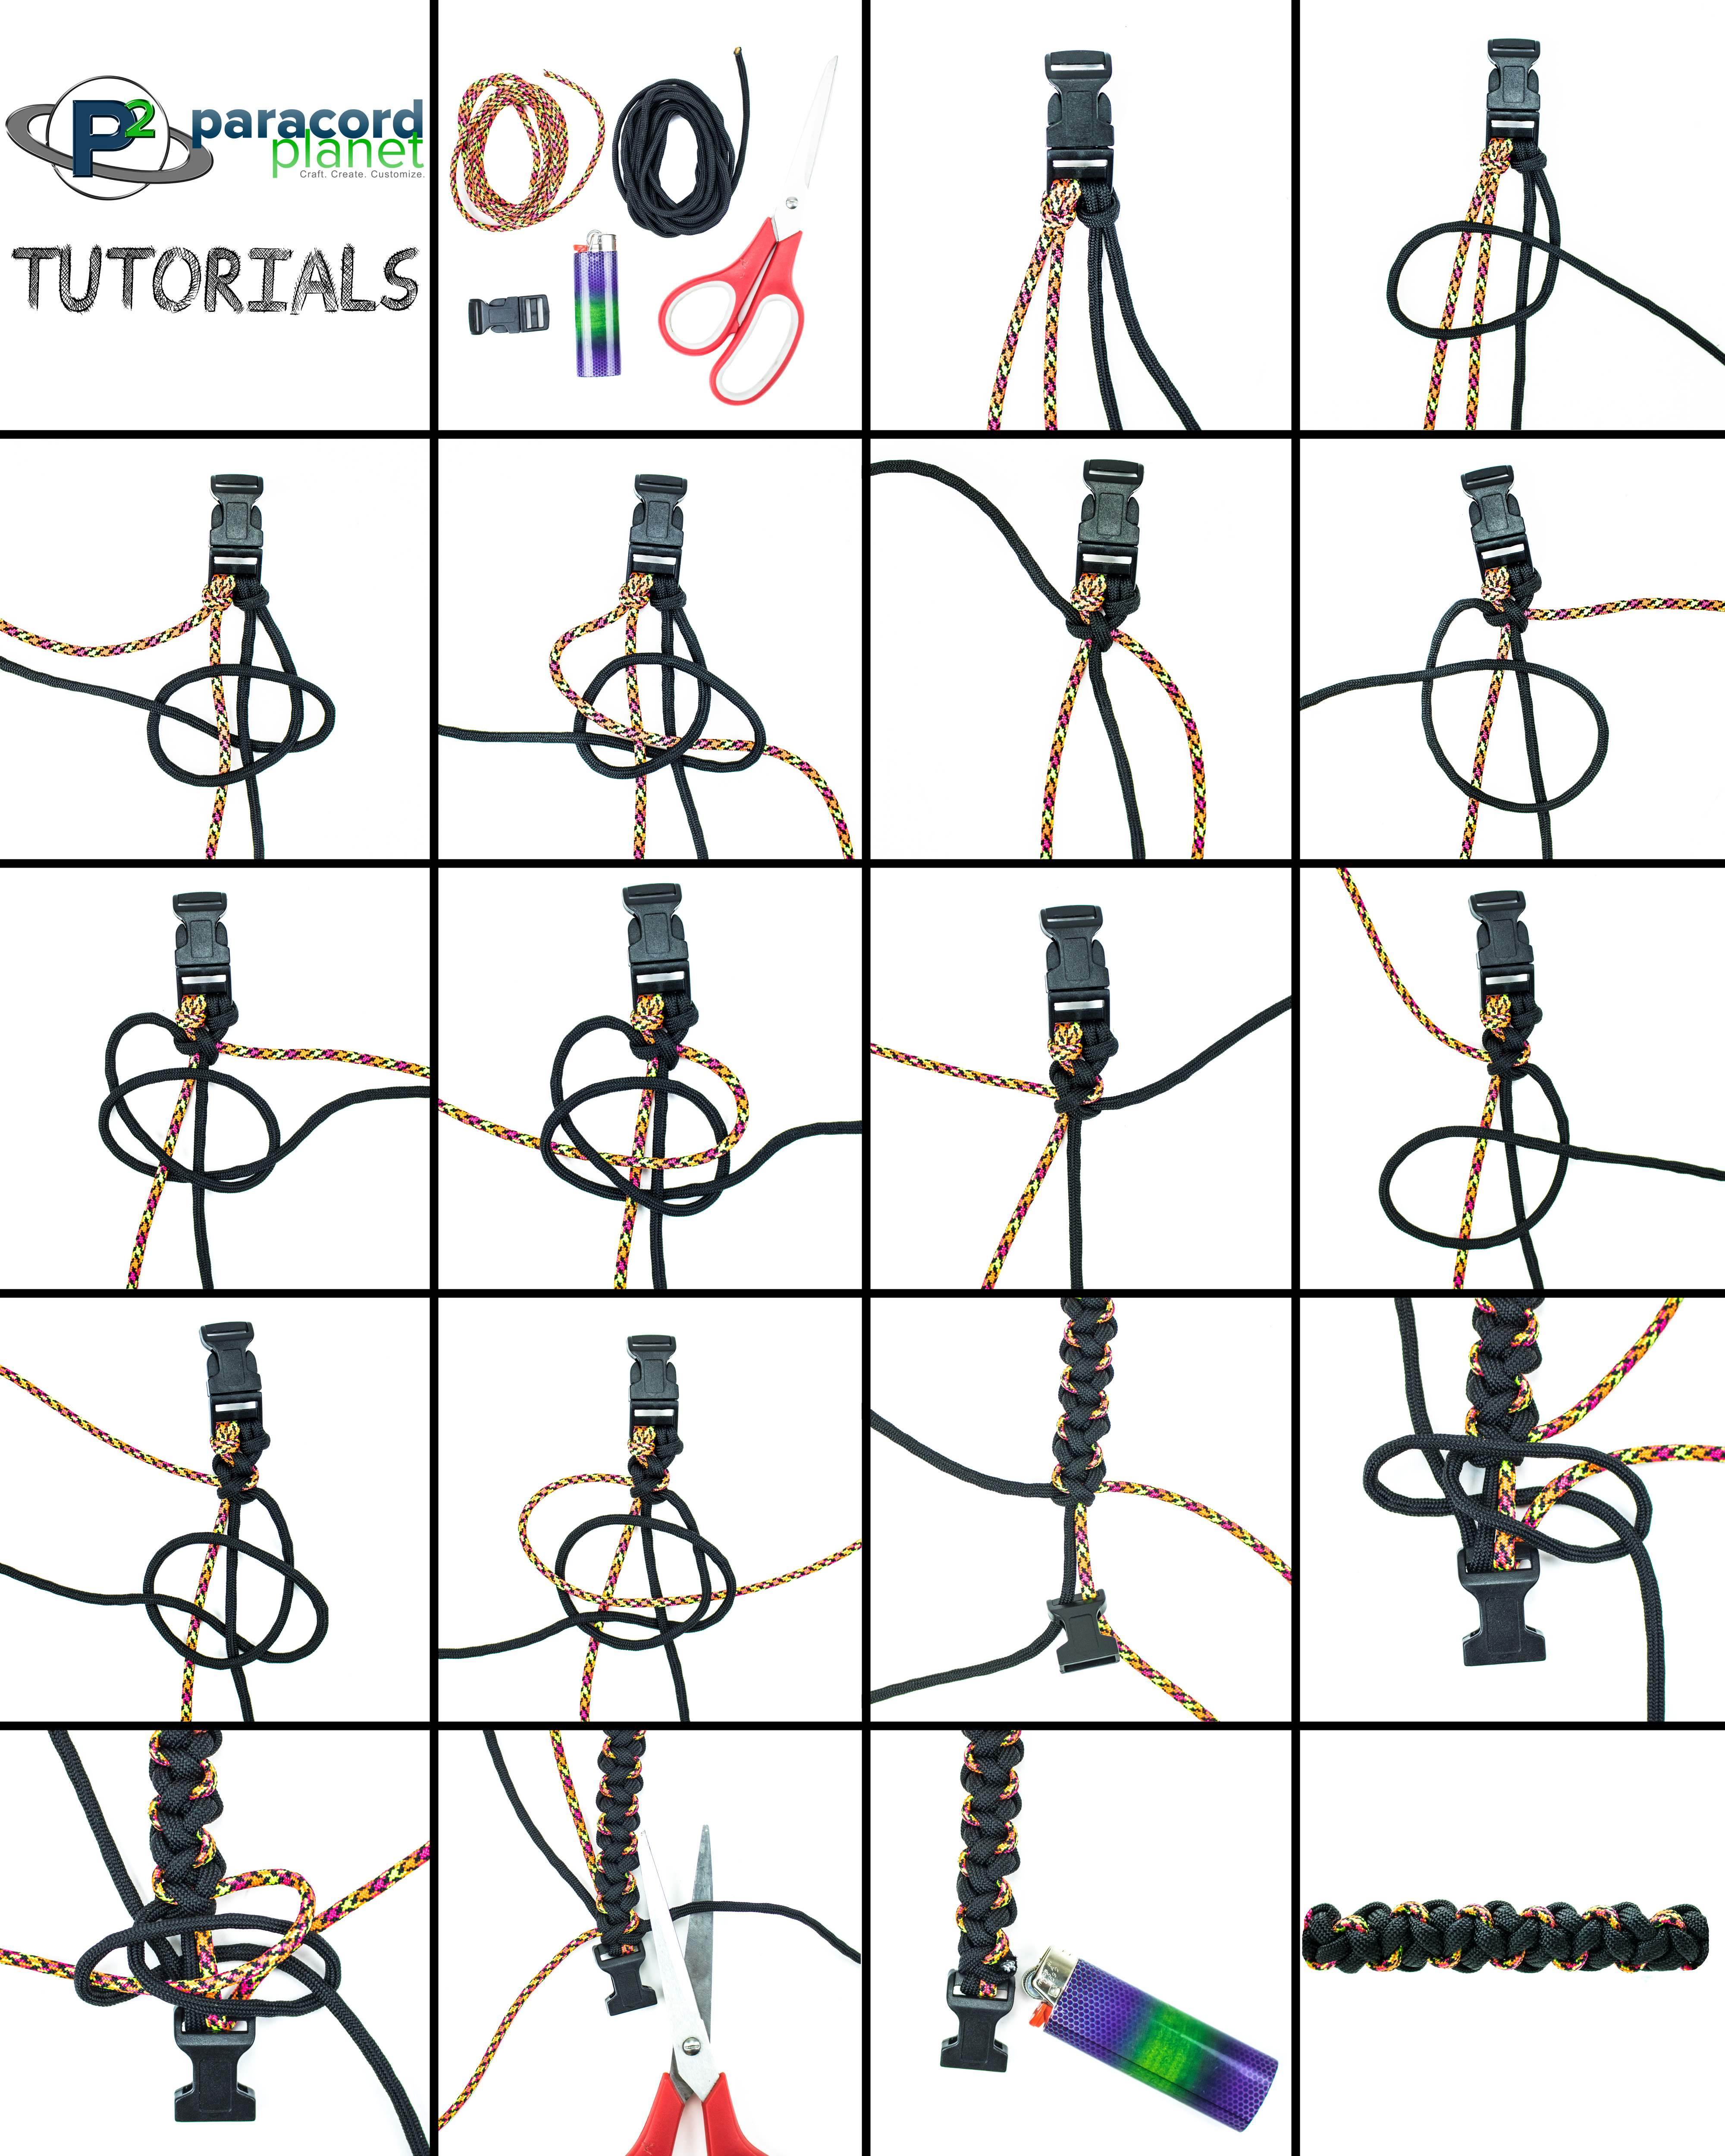 Paracord Cross Crooked River Bar bracelet photo tutorial